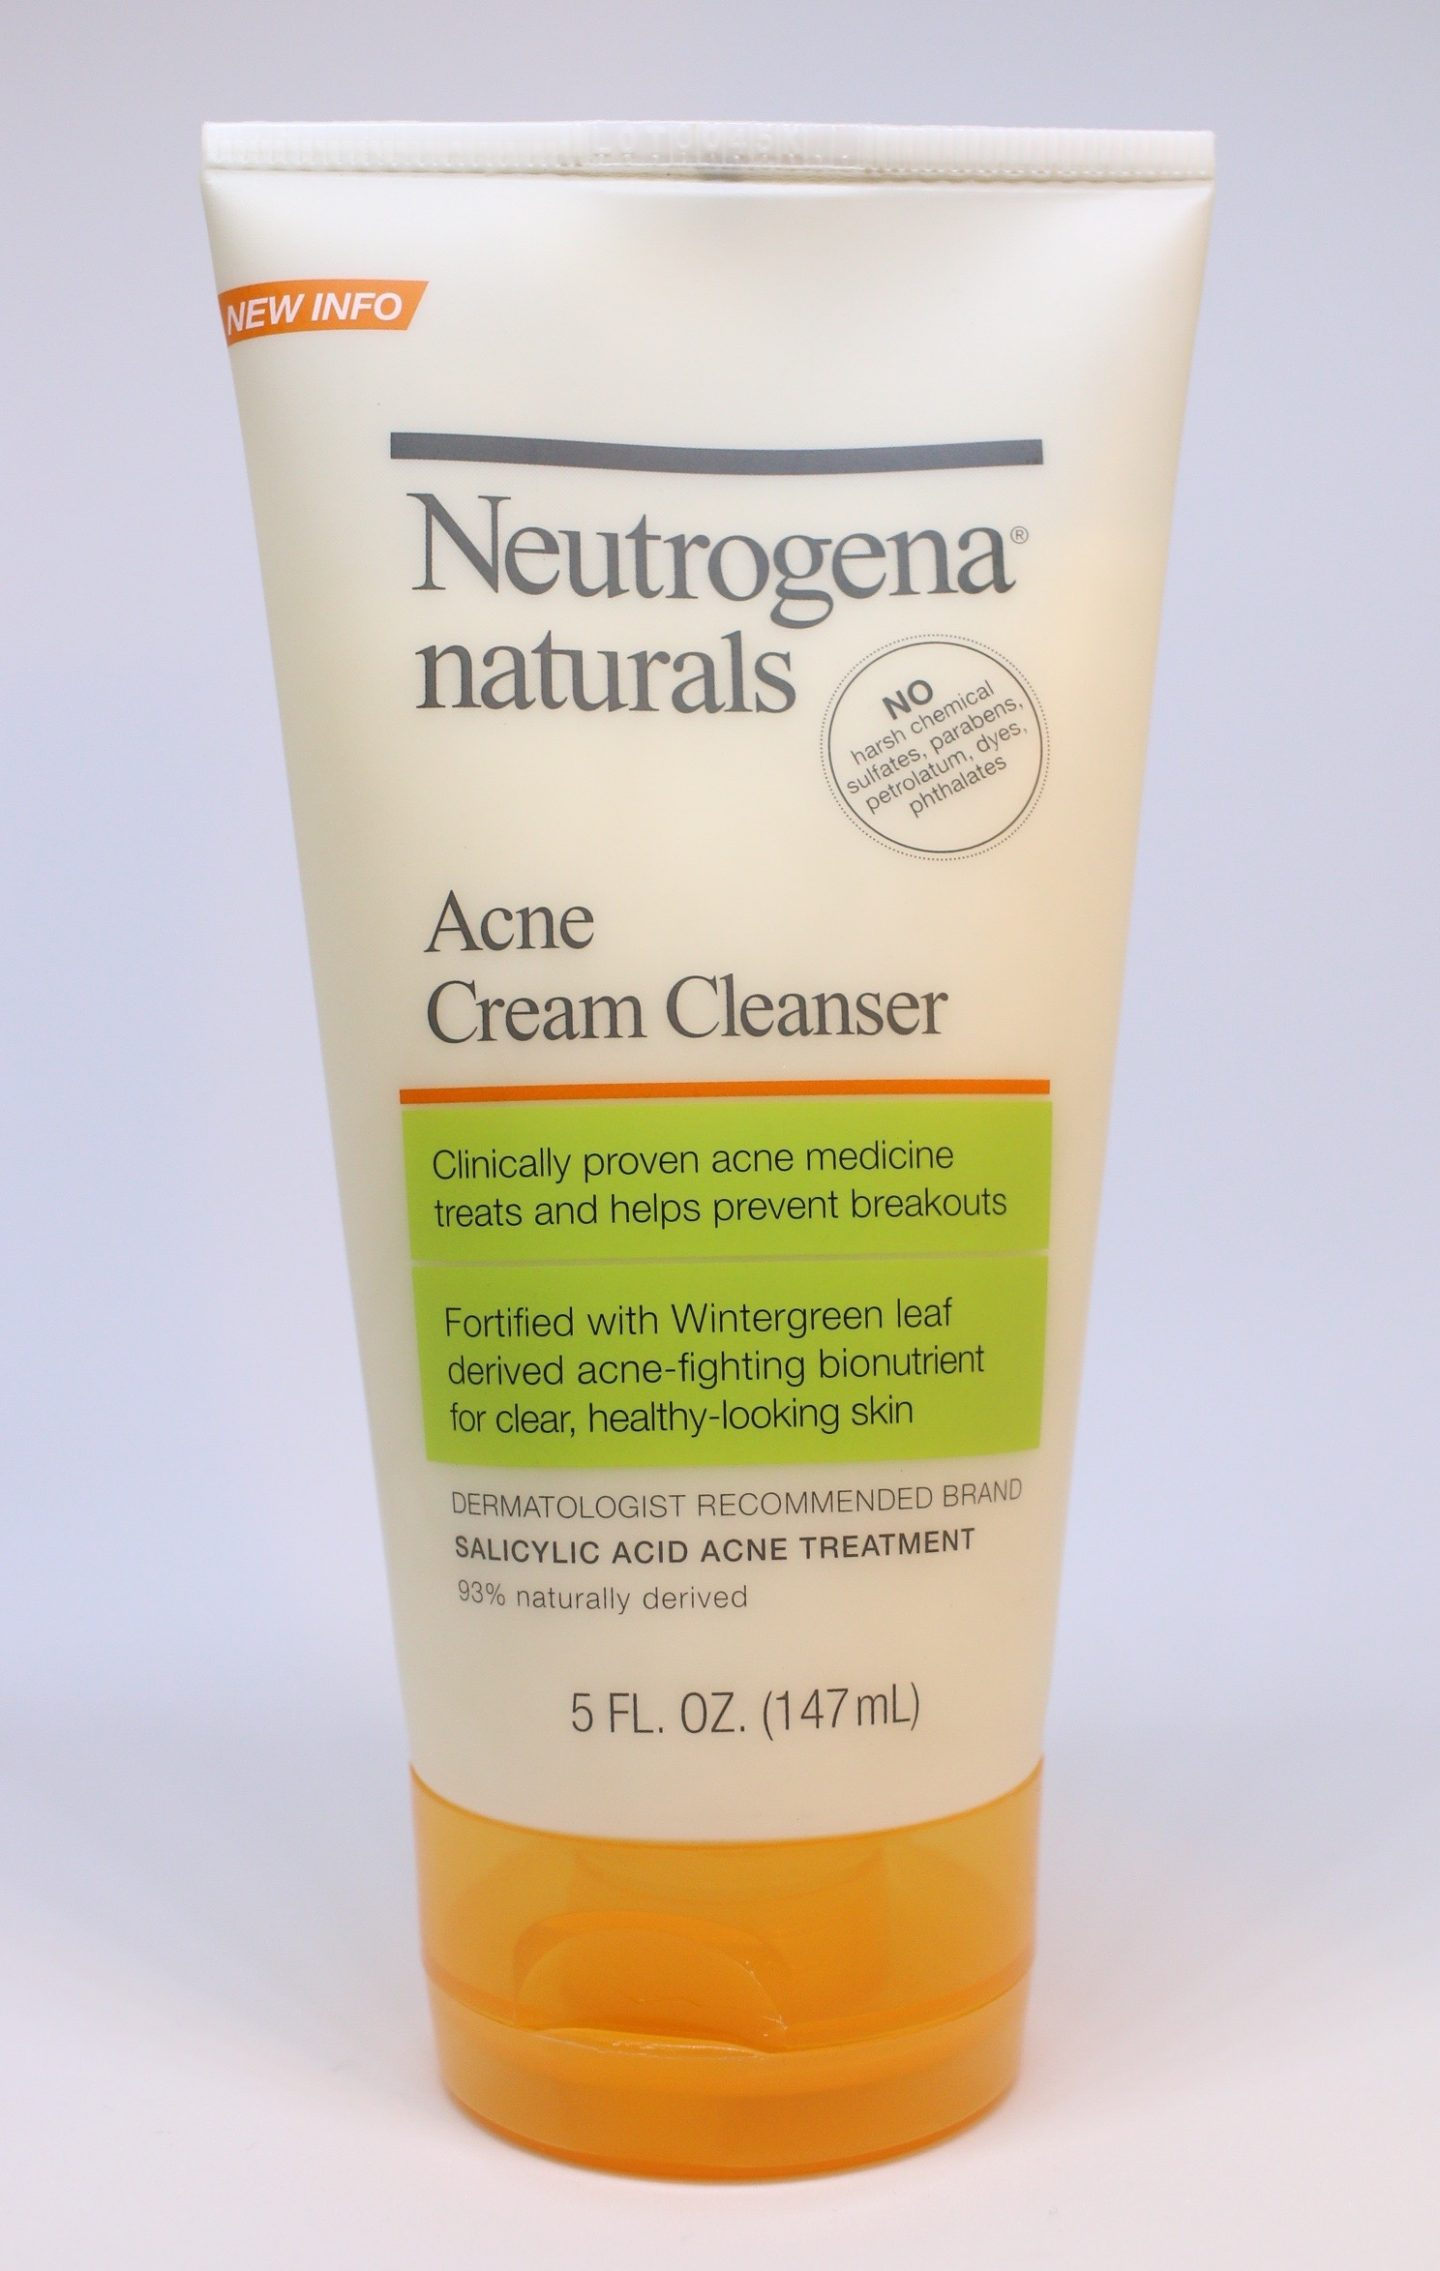 Neutrogena Naturals Acne Cream Cleanser - Caroline Hirons